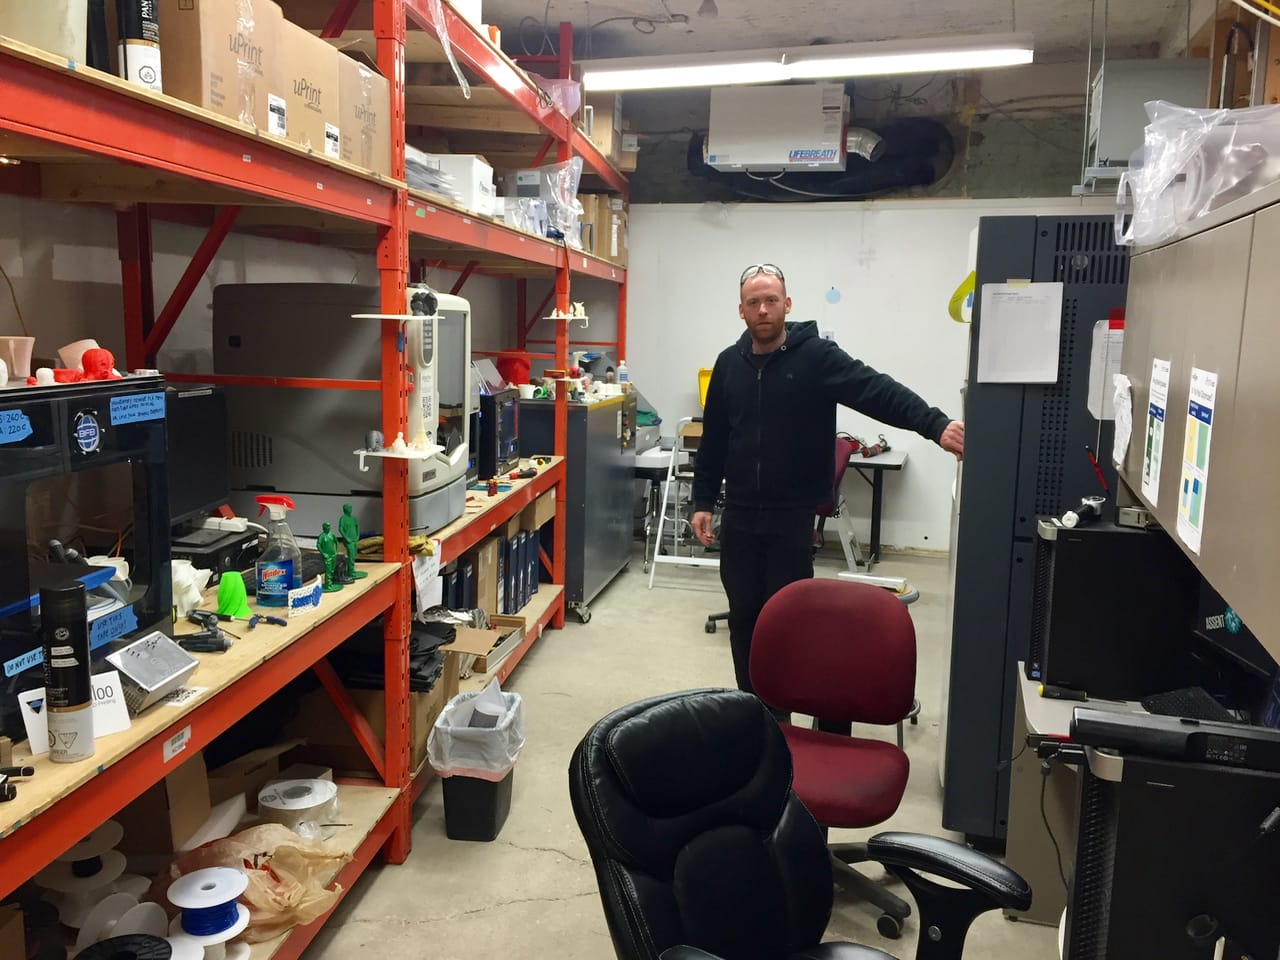 3D printers are a common sight in makerspaces